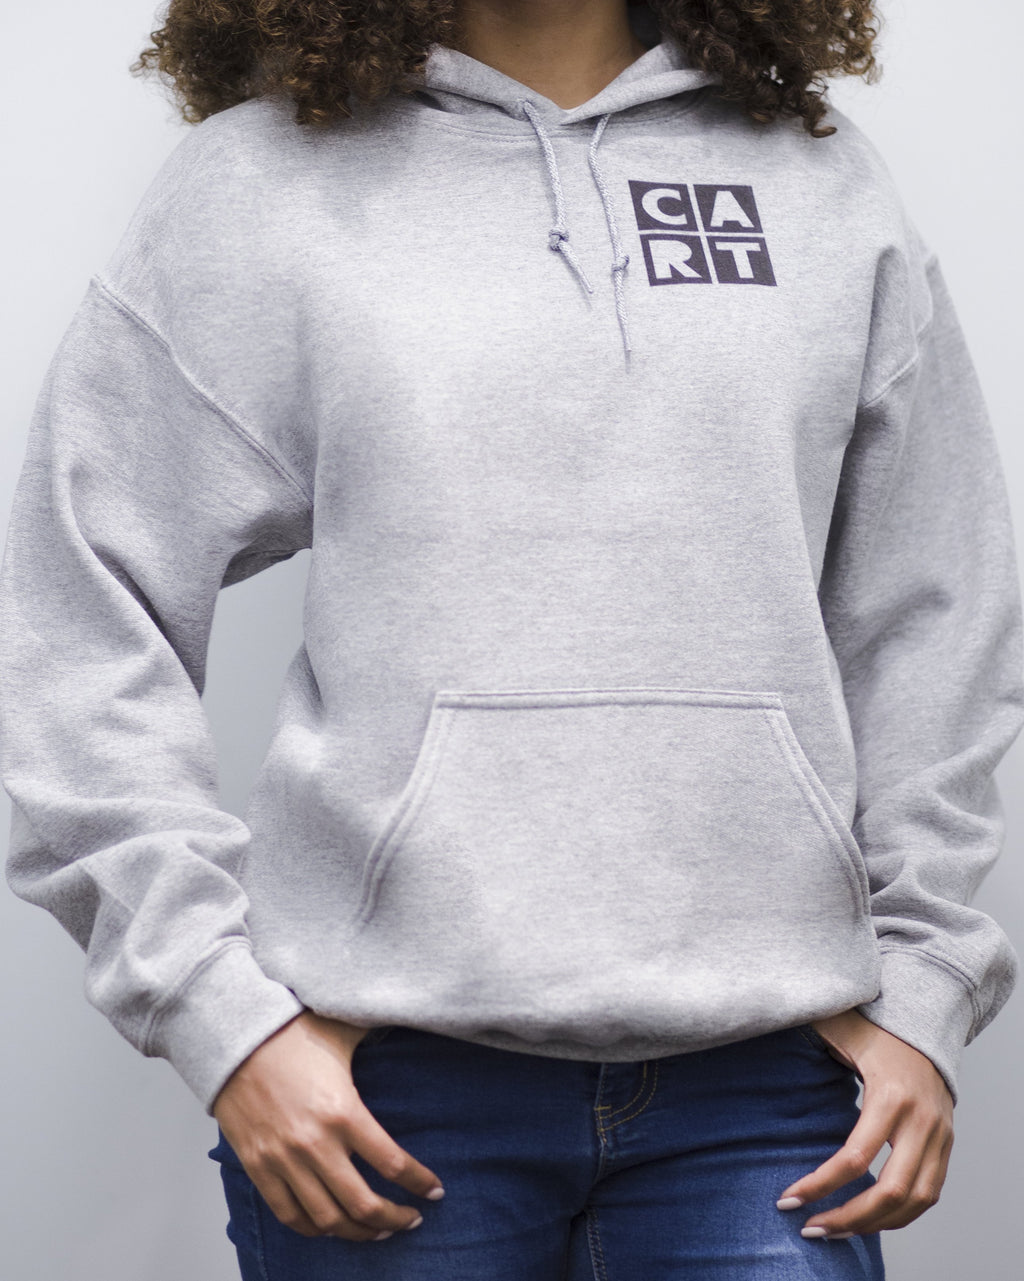 CART Hooded Sweatshirt - Chest Logo Black